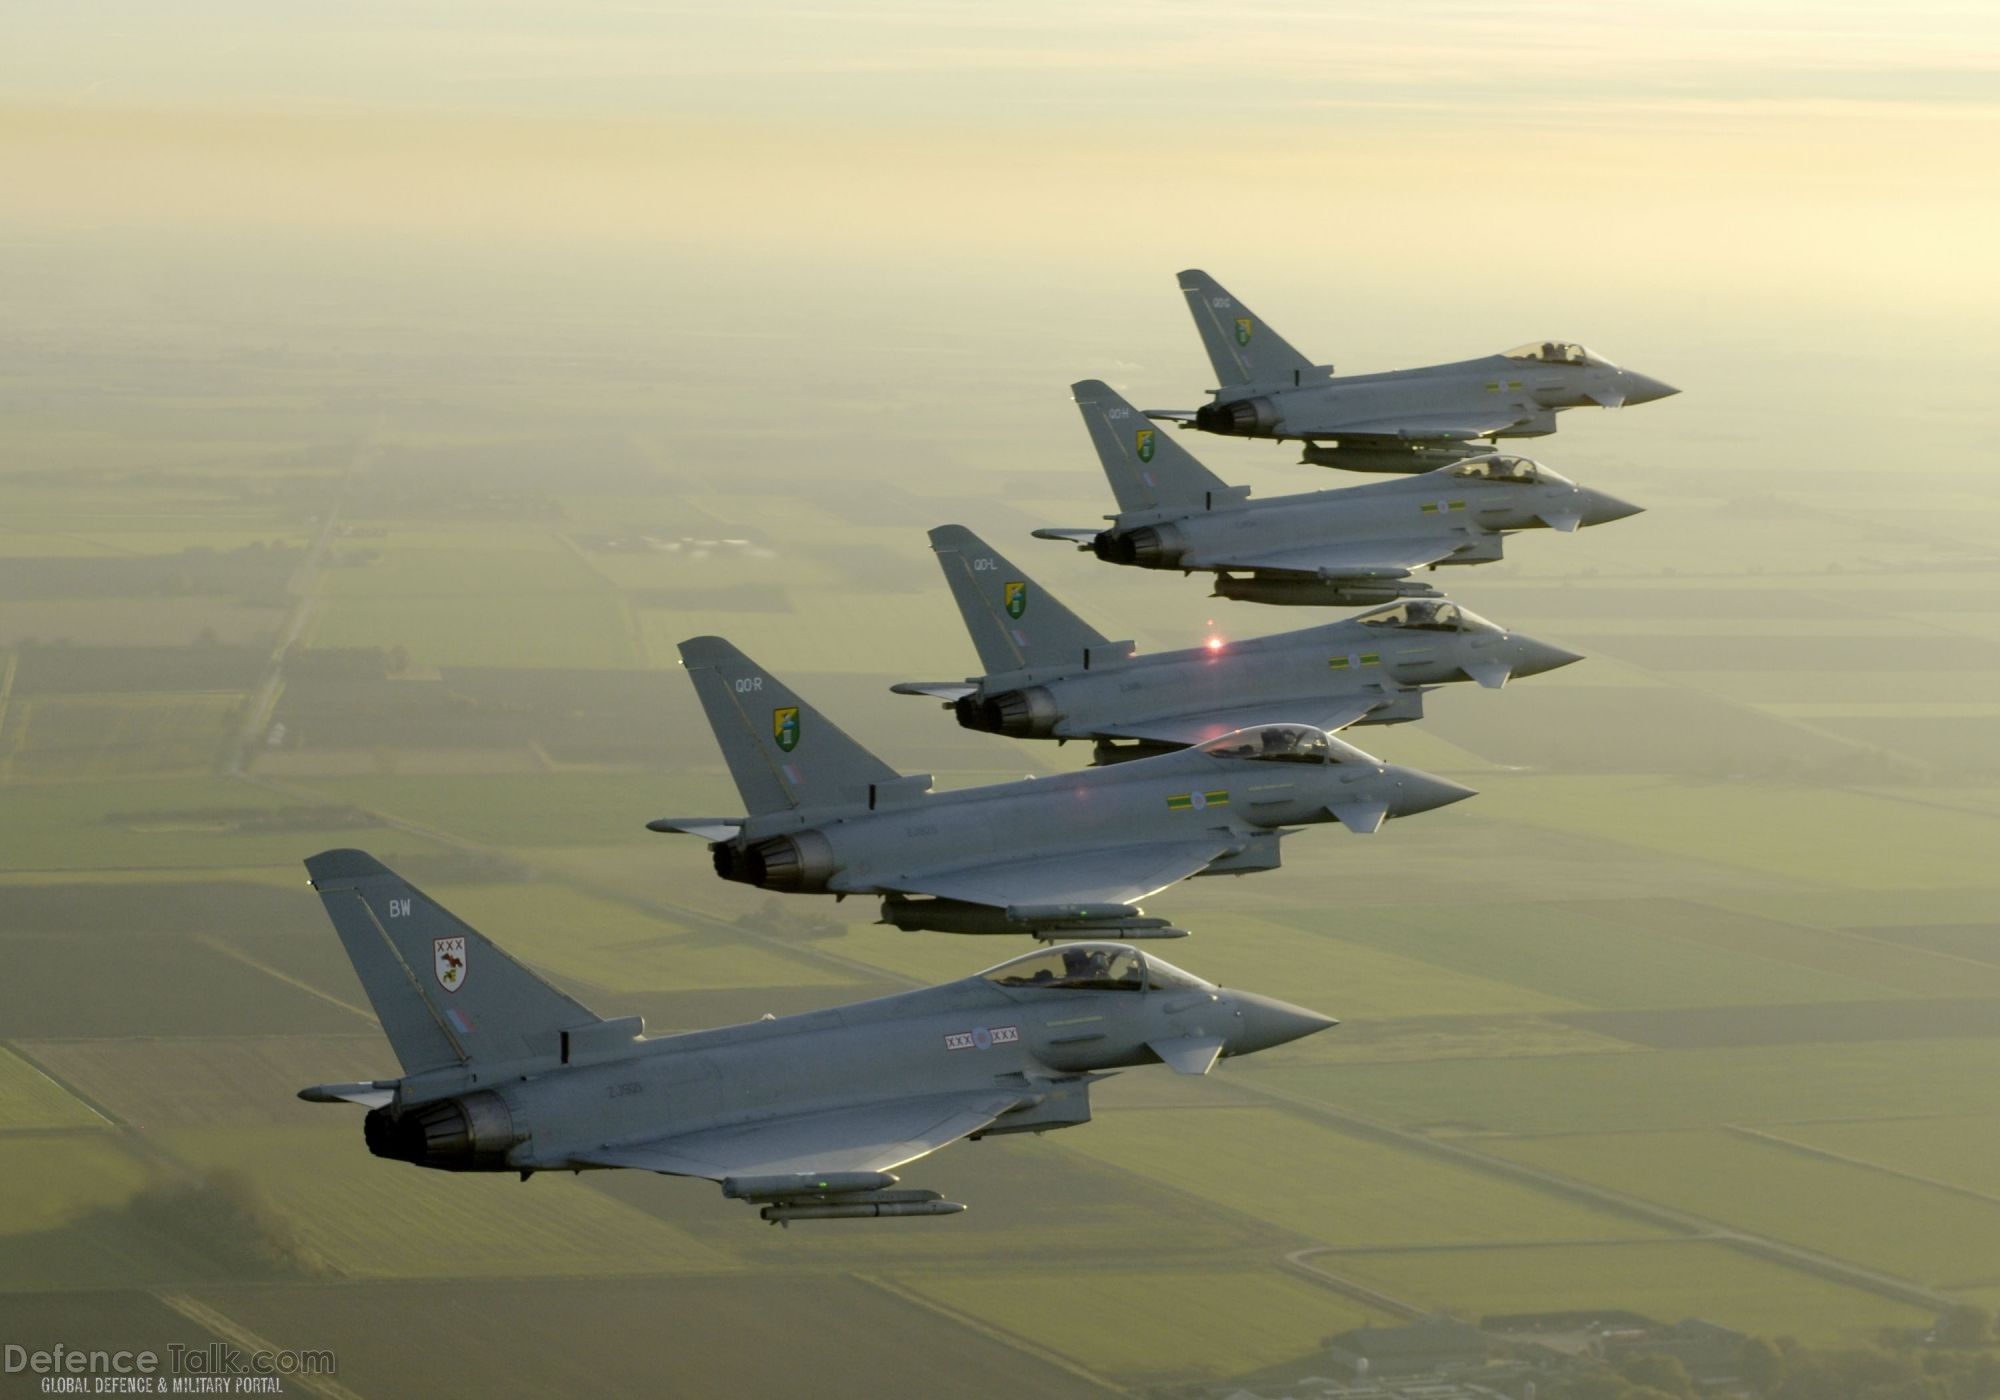 Eurofighter Typhoon fighter, Royal Air Force